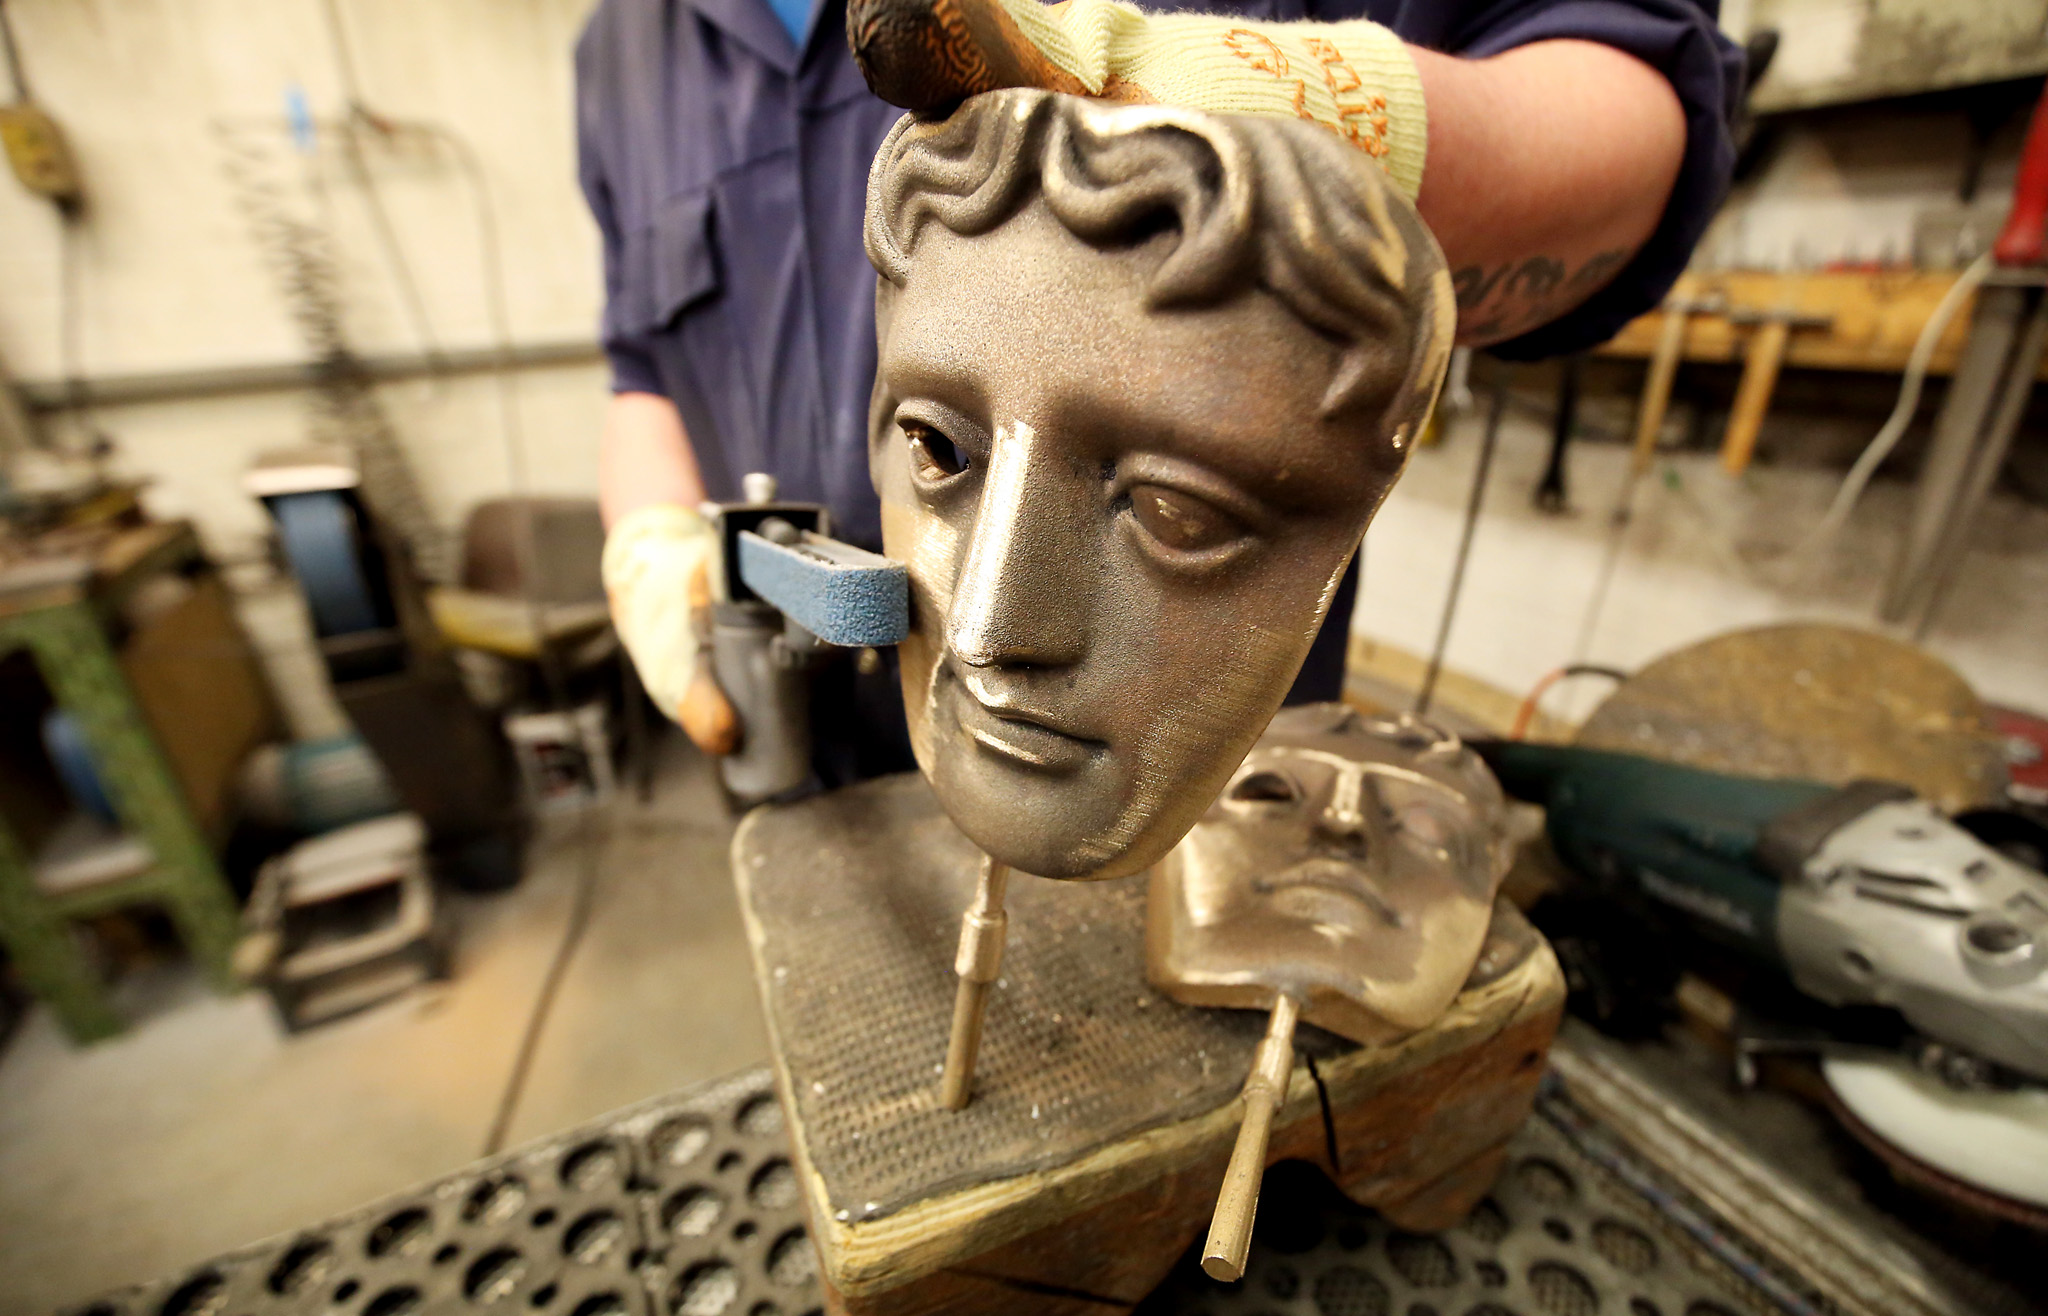 BAFTA preparations...Fettler Piotr Lichon sands a bronze statue to  create a BAFTA mask at New Pro Foundries in West Drayton, Middlesex, ahead the ceremony later this month. PRESS ASSOCIATION Photo. Picture date: Thursday February 4, 2016. Designed by US sculptor Mitzi Cunliffe in 1955, New Pro Foundries has been making the bronze casts since the ceremony was created in 1976. Photo credit should read: Steve Parsons/PA Wire